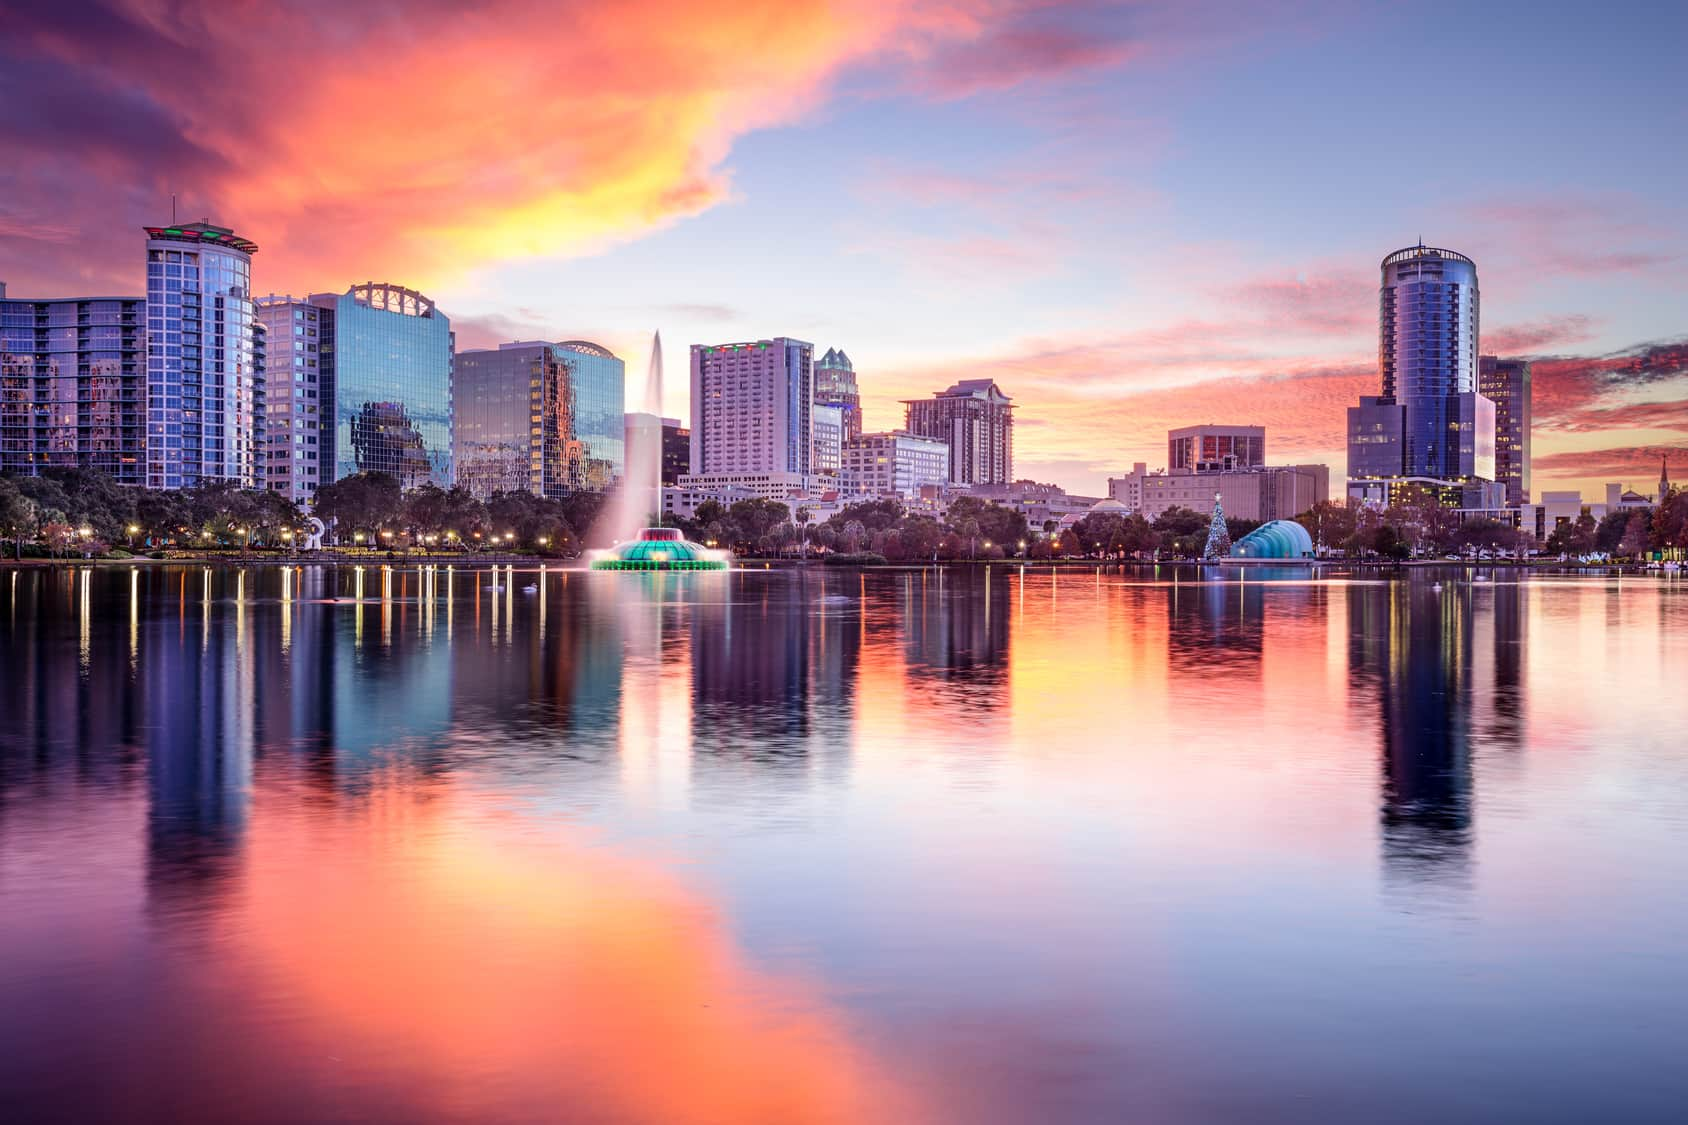 Heading to Orlando for vacation, or looking to take a staycation close to home? Just ask a Florida native how to do Orlando - outside of the theme parks!